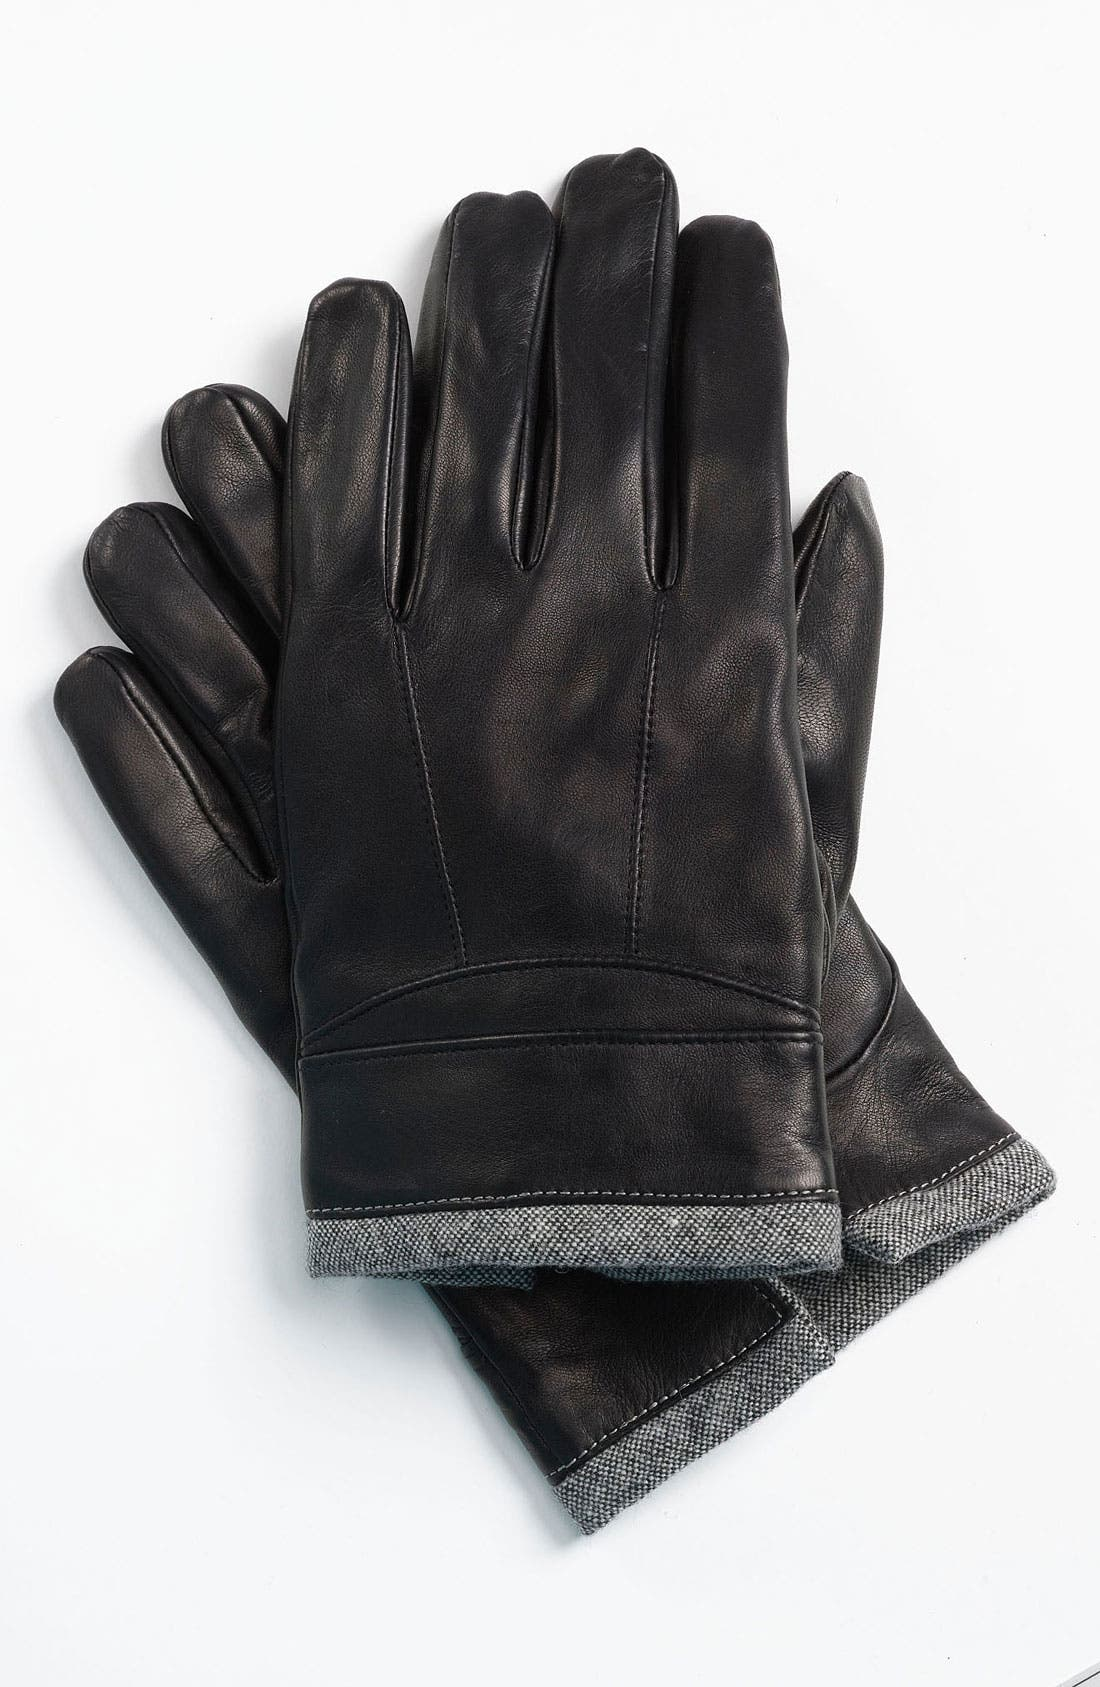 Alternate Image 1 Selected - BOSS Black 'Hentom' Leather Gloves